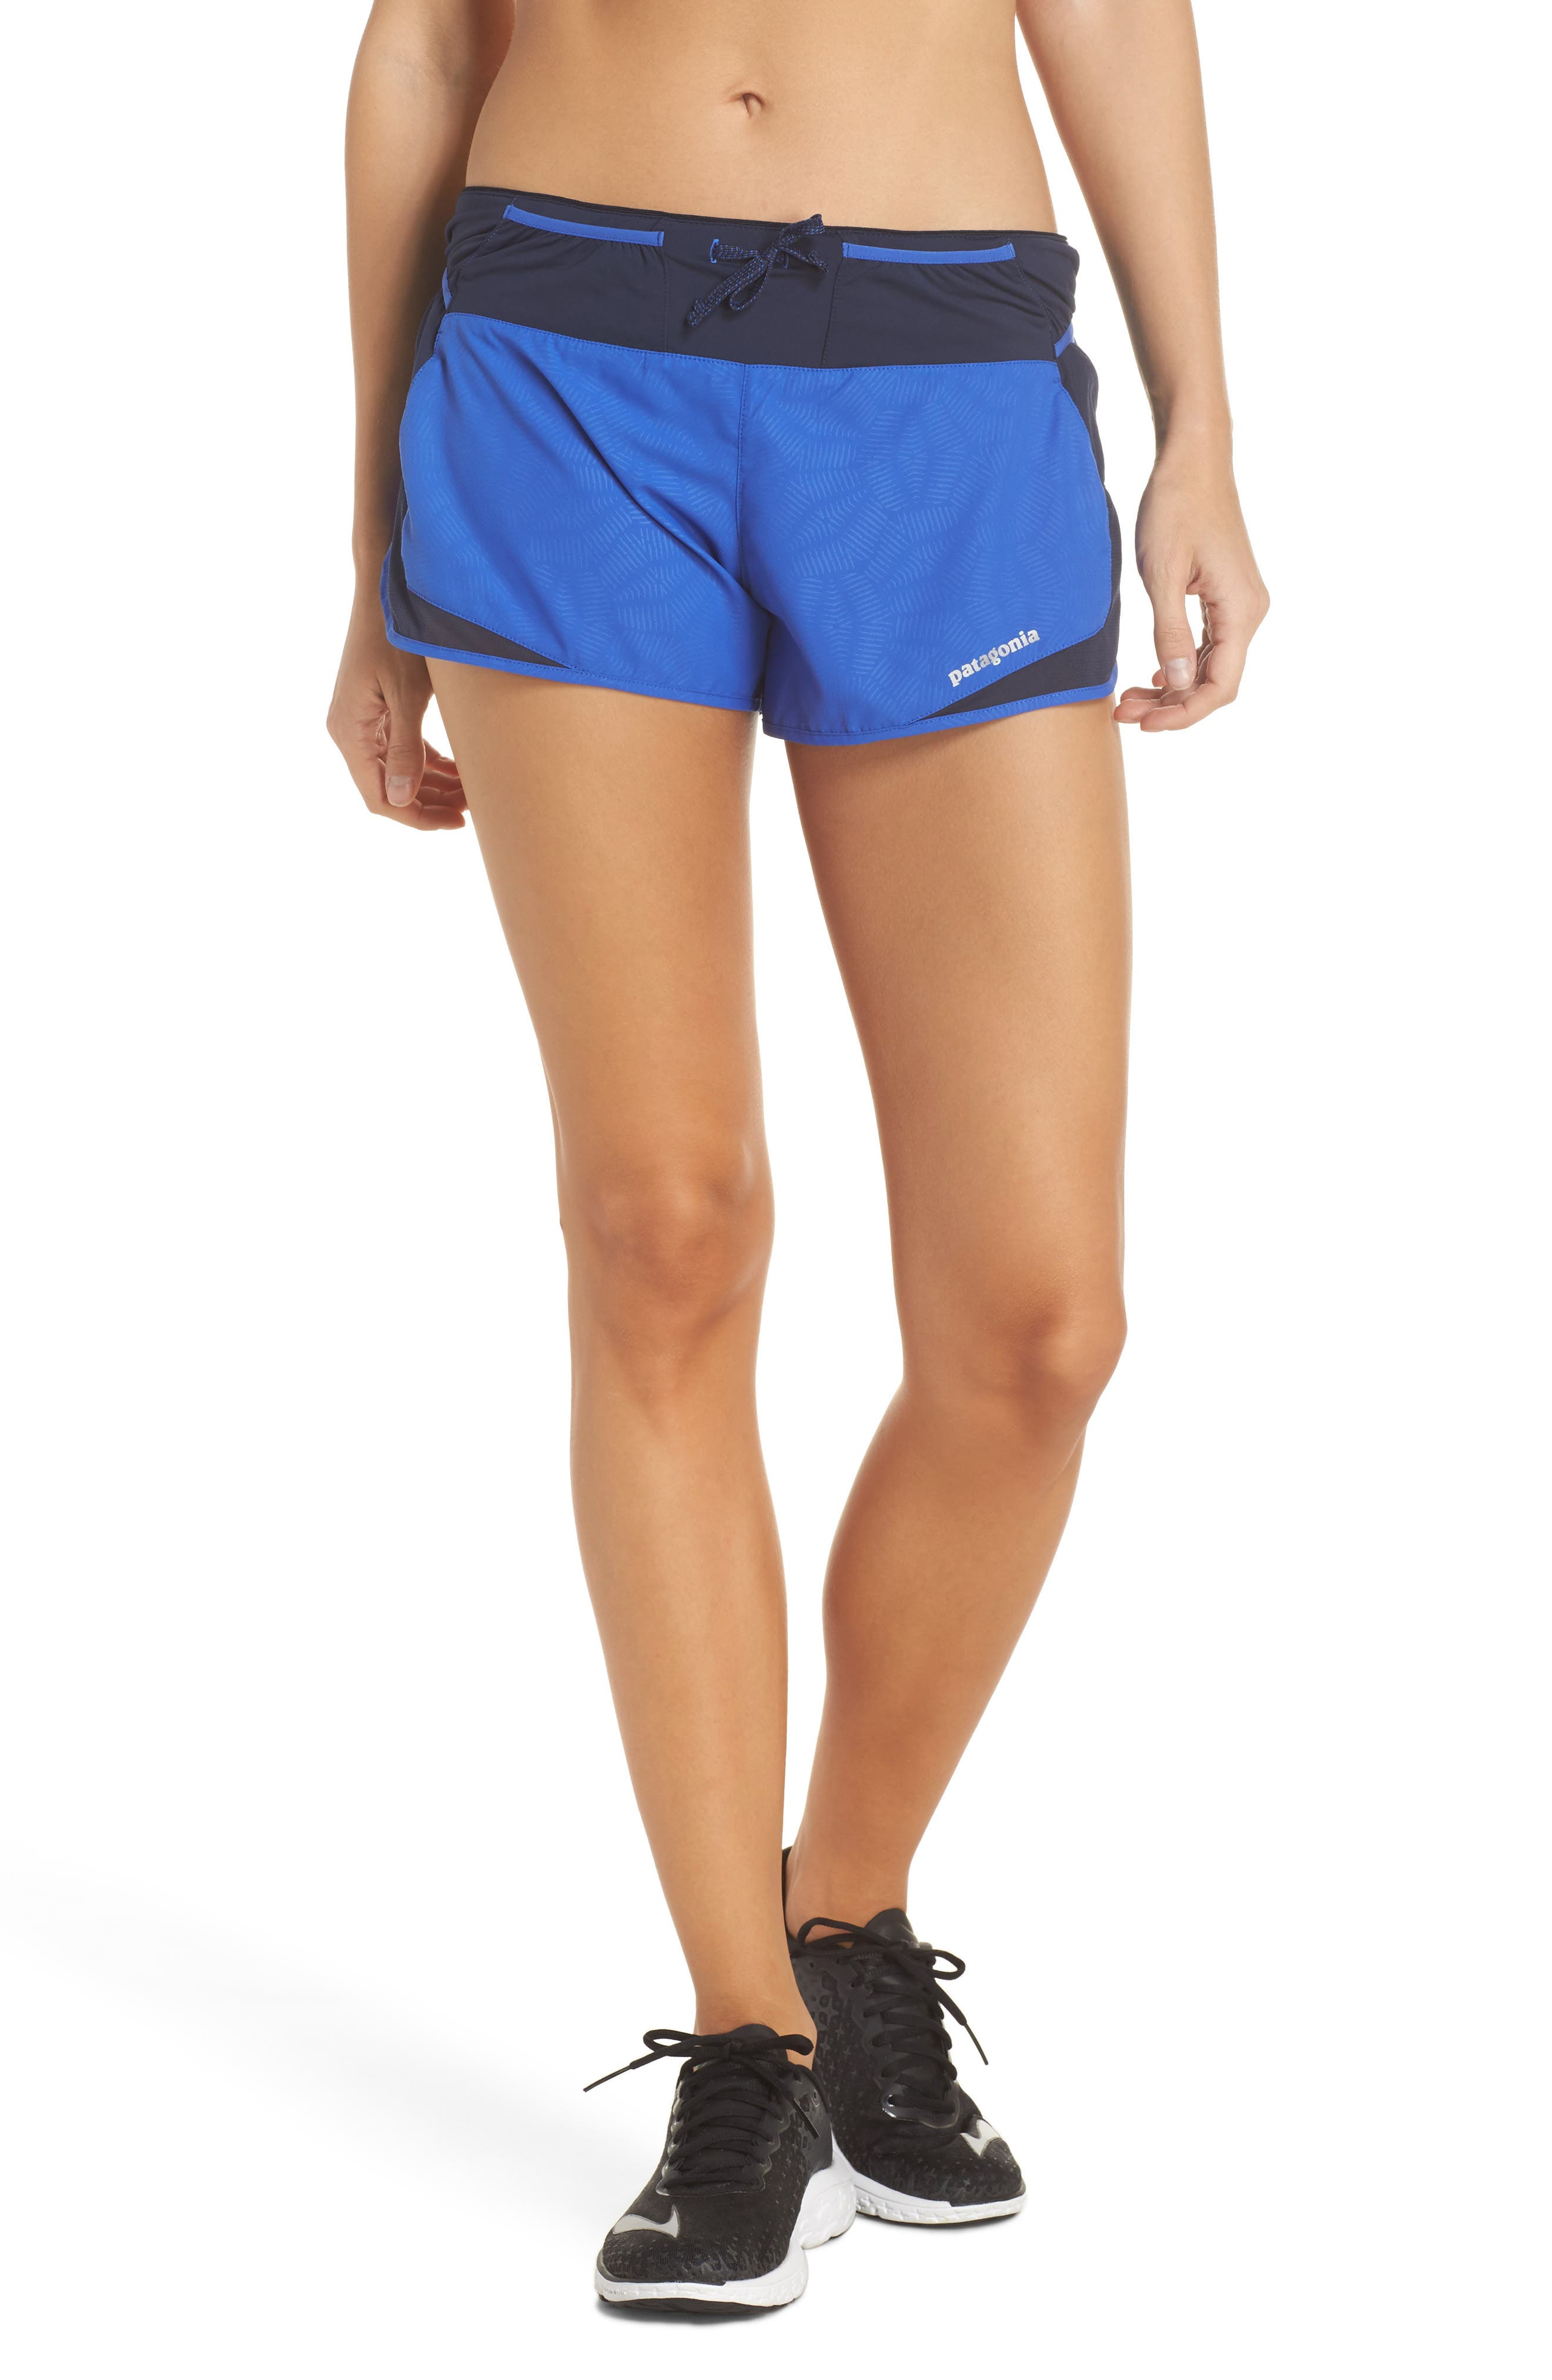 Strider Pro Trail Running Shorts,                         Main,                         color, Hexy - Imperial Blue